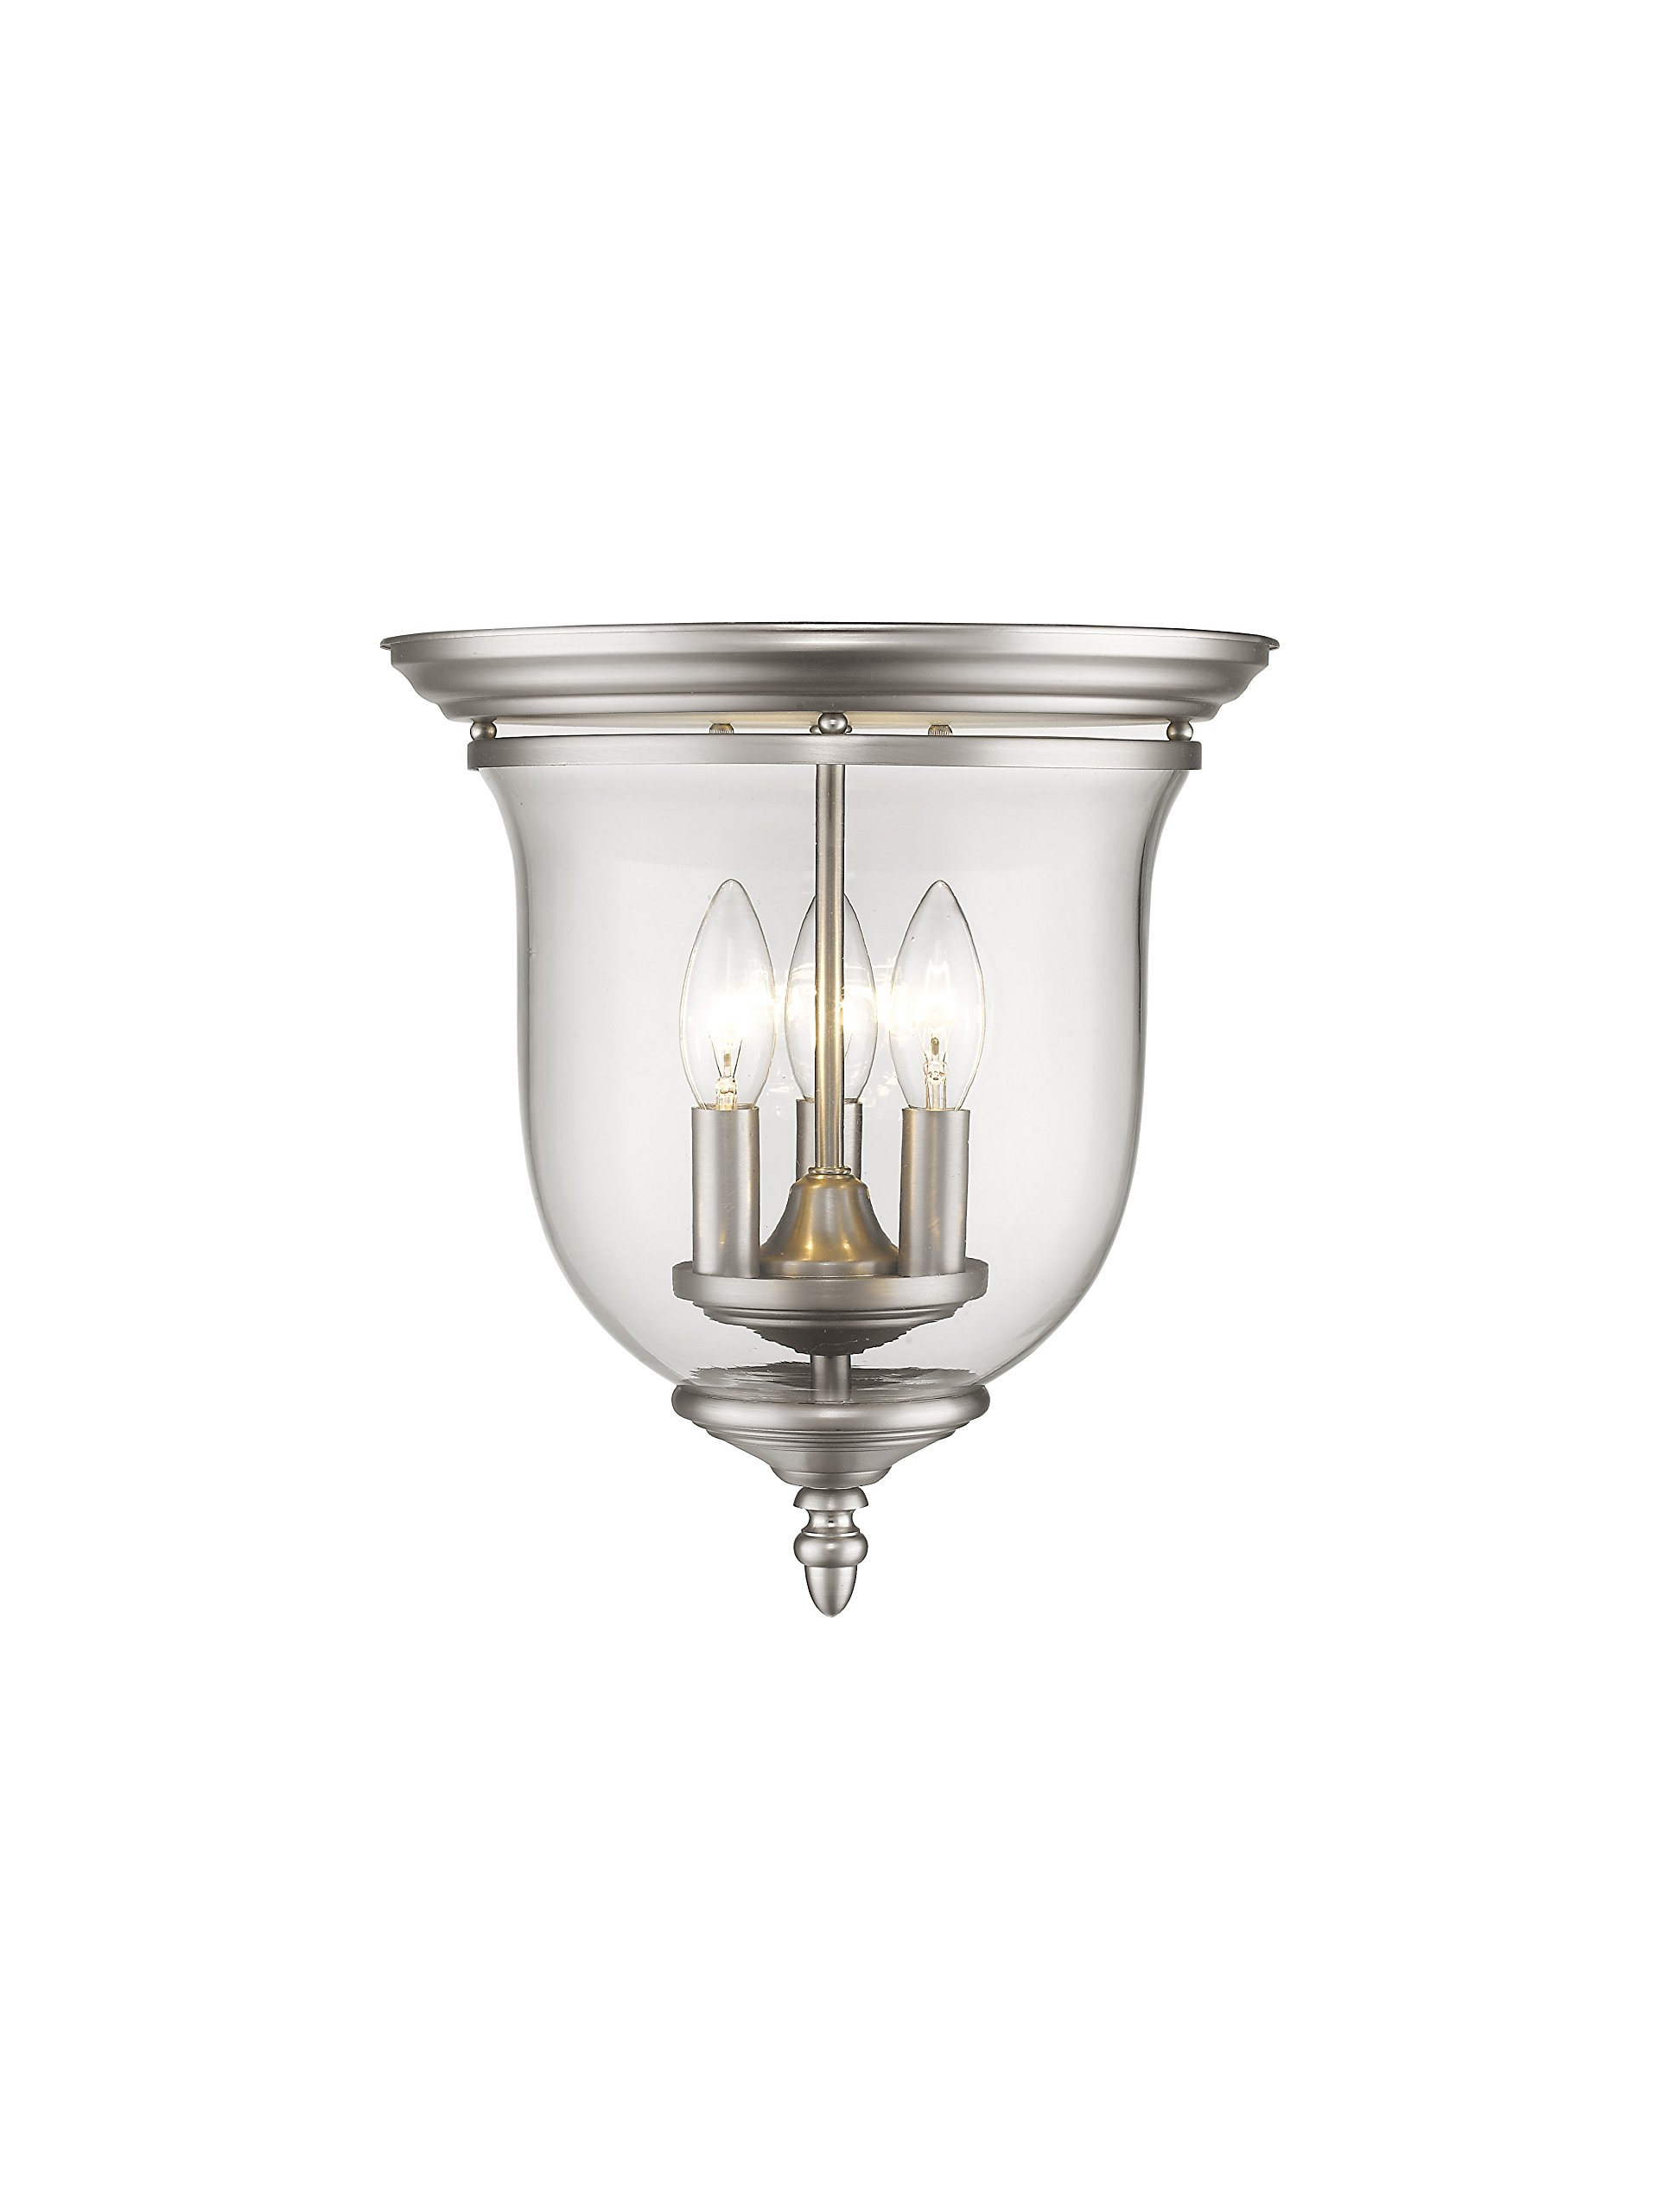 Livex Lighting 5021-91 Legacy 3 Light Brushed Nickel Flush Mount with Clear Glass by Livex Lighting